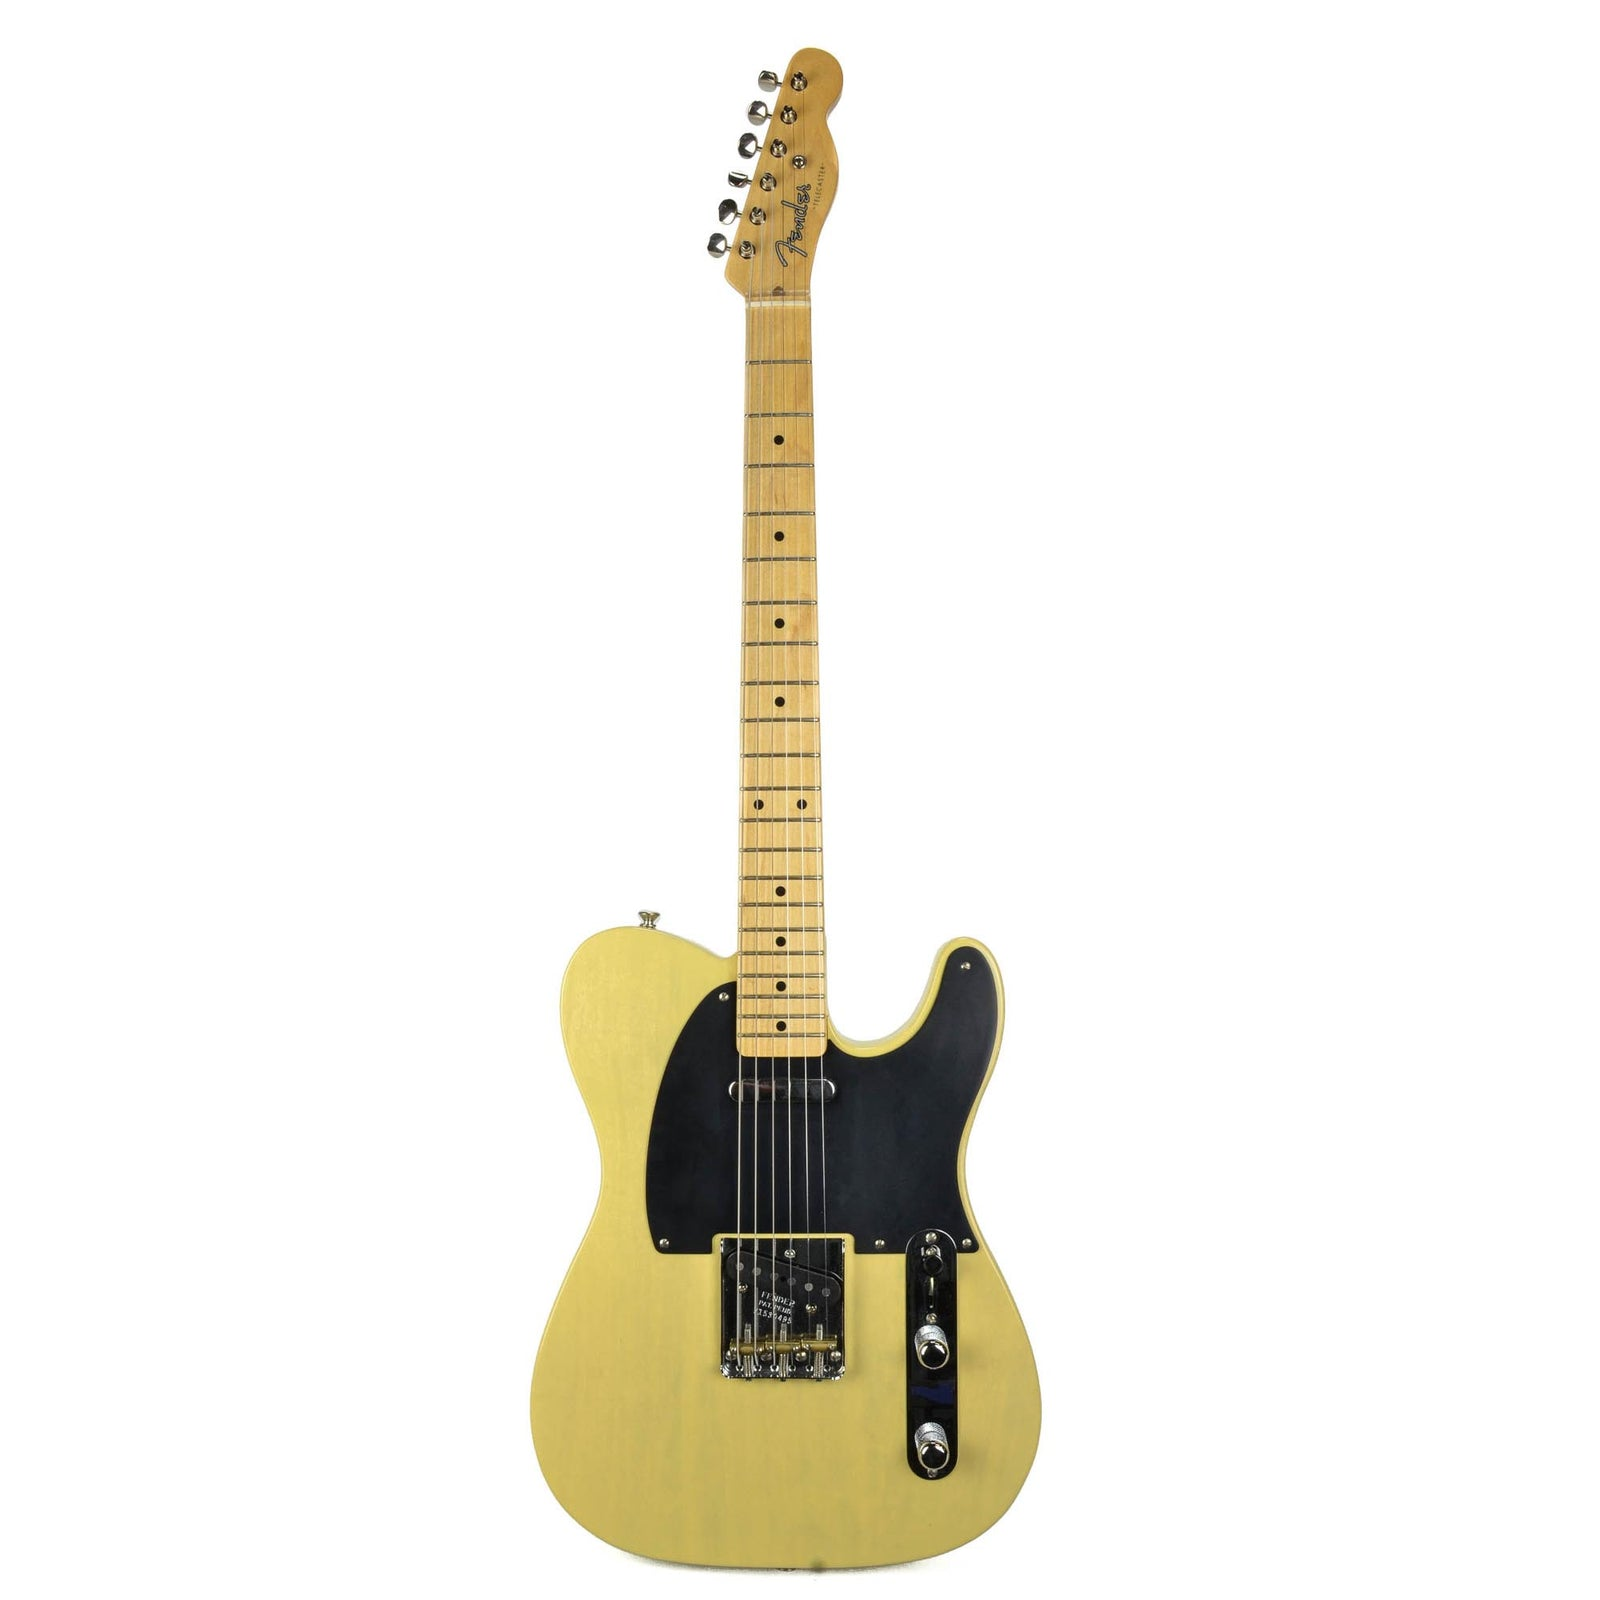 Fender Limited Edition 10 For 15 '52 Korina Telecaster - Used